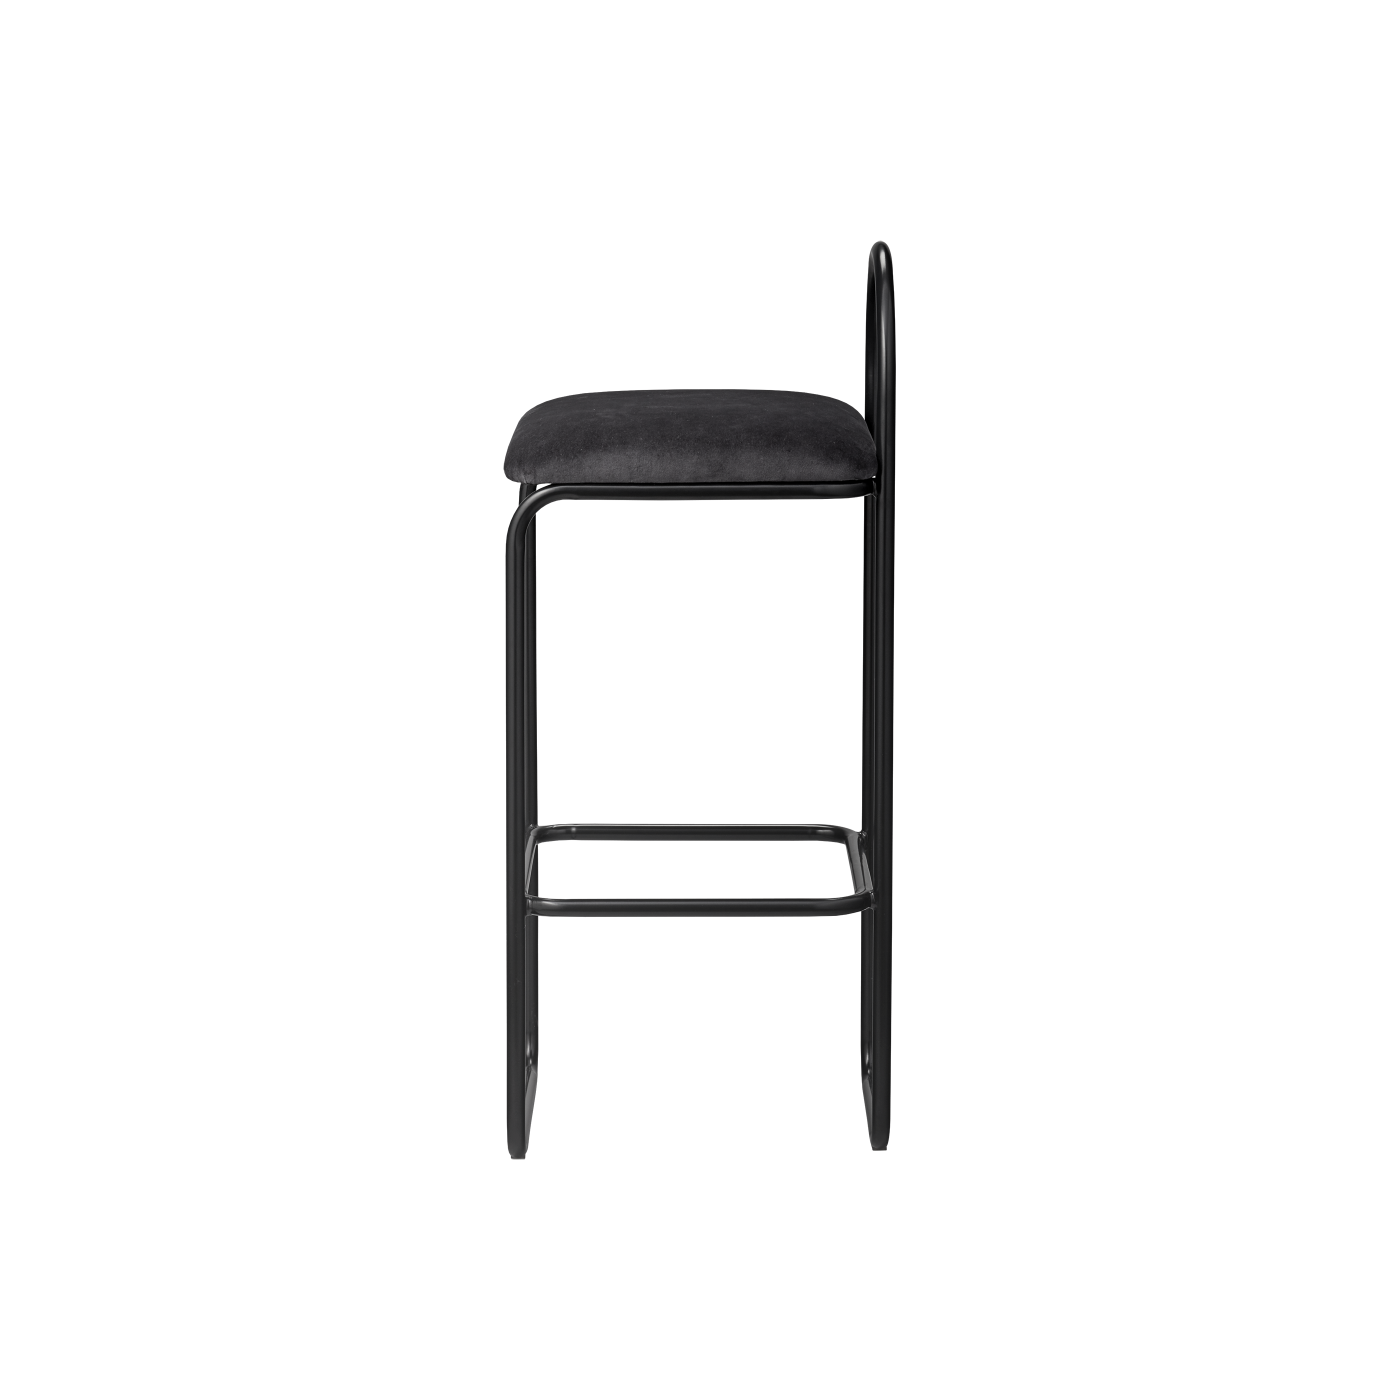 ANGUI bar chair high anthracite, AYTM